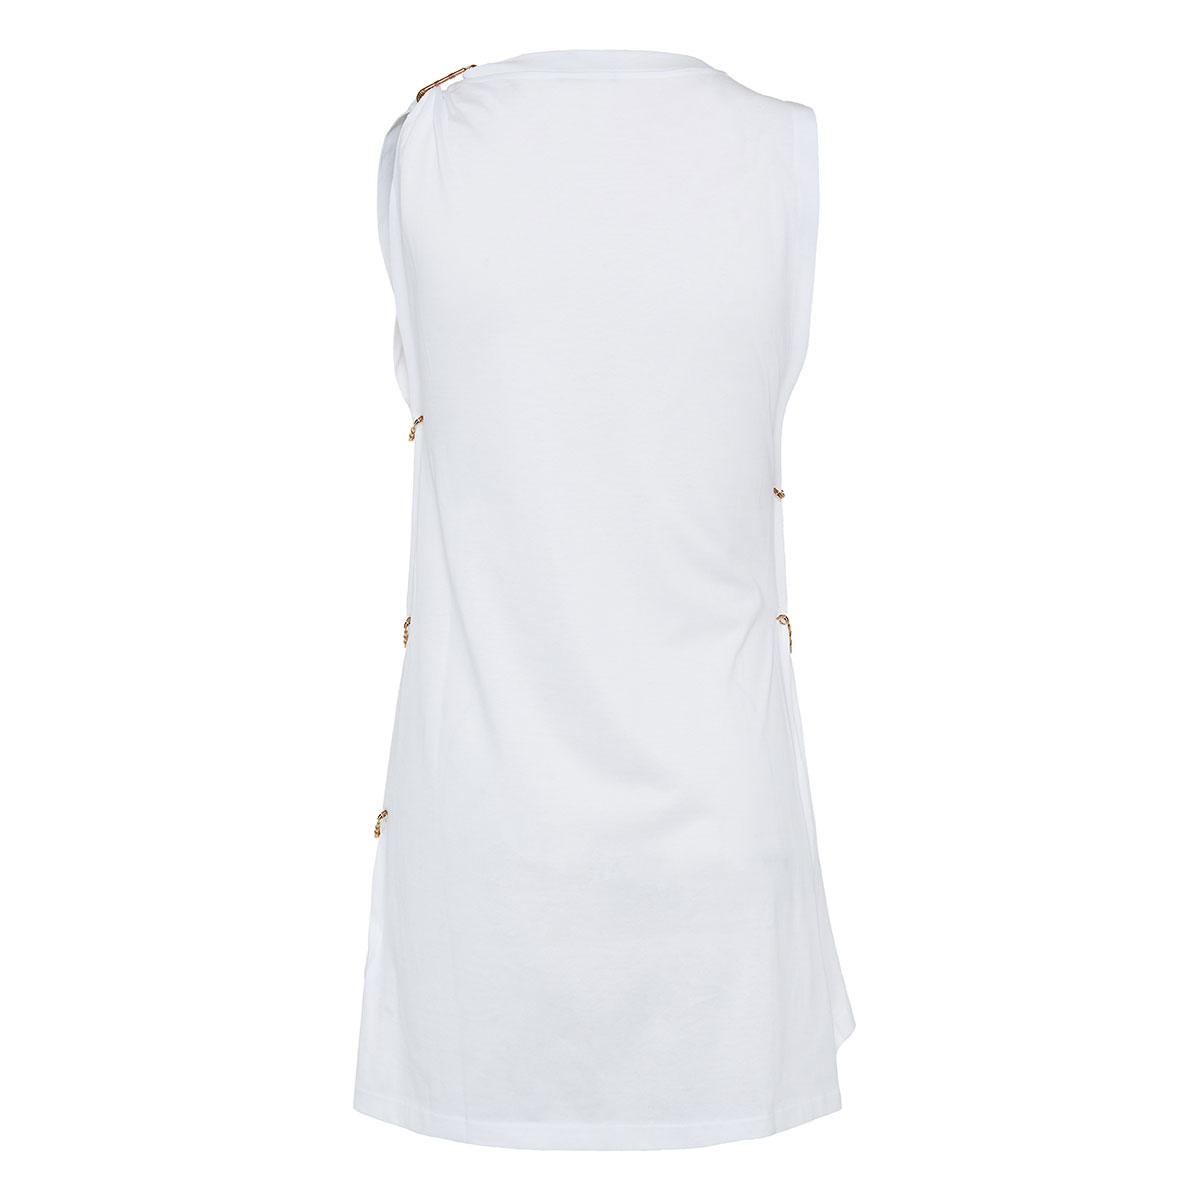 Pin-embellished cutout logo top